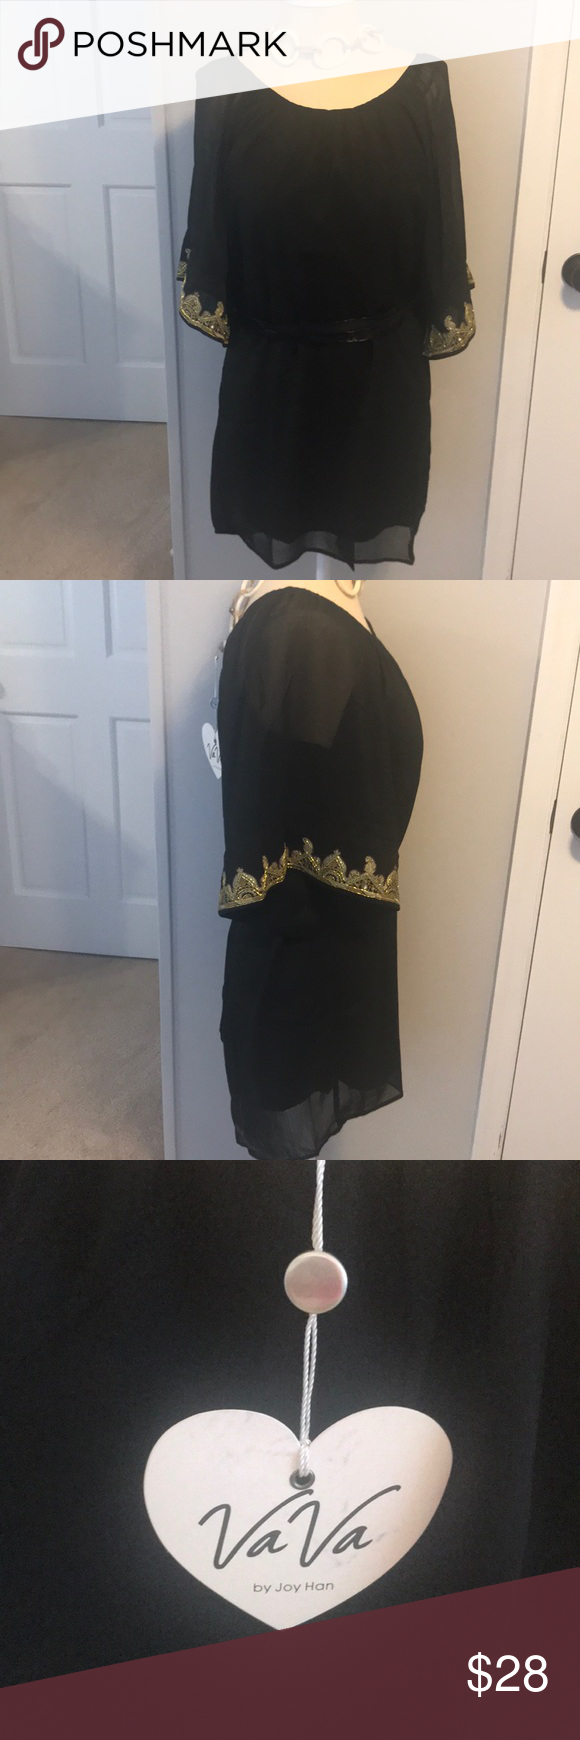 Black Dress With Gold Accents On Sleeves Black Dress With Gold Accent Sleeves Looks Great With A Thin Black Silk Fashion Tips Clothes Design Colorful Dresses [ 1740 x 580 Pixel ]